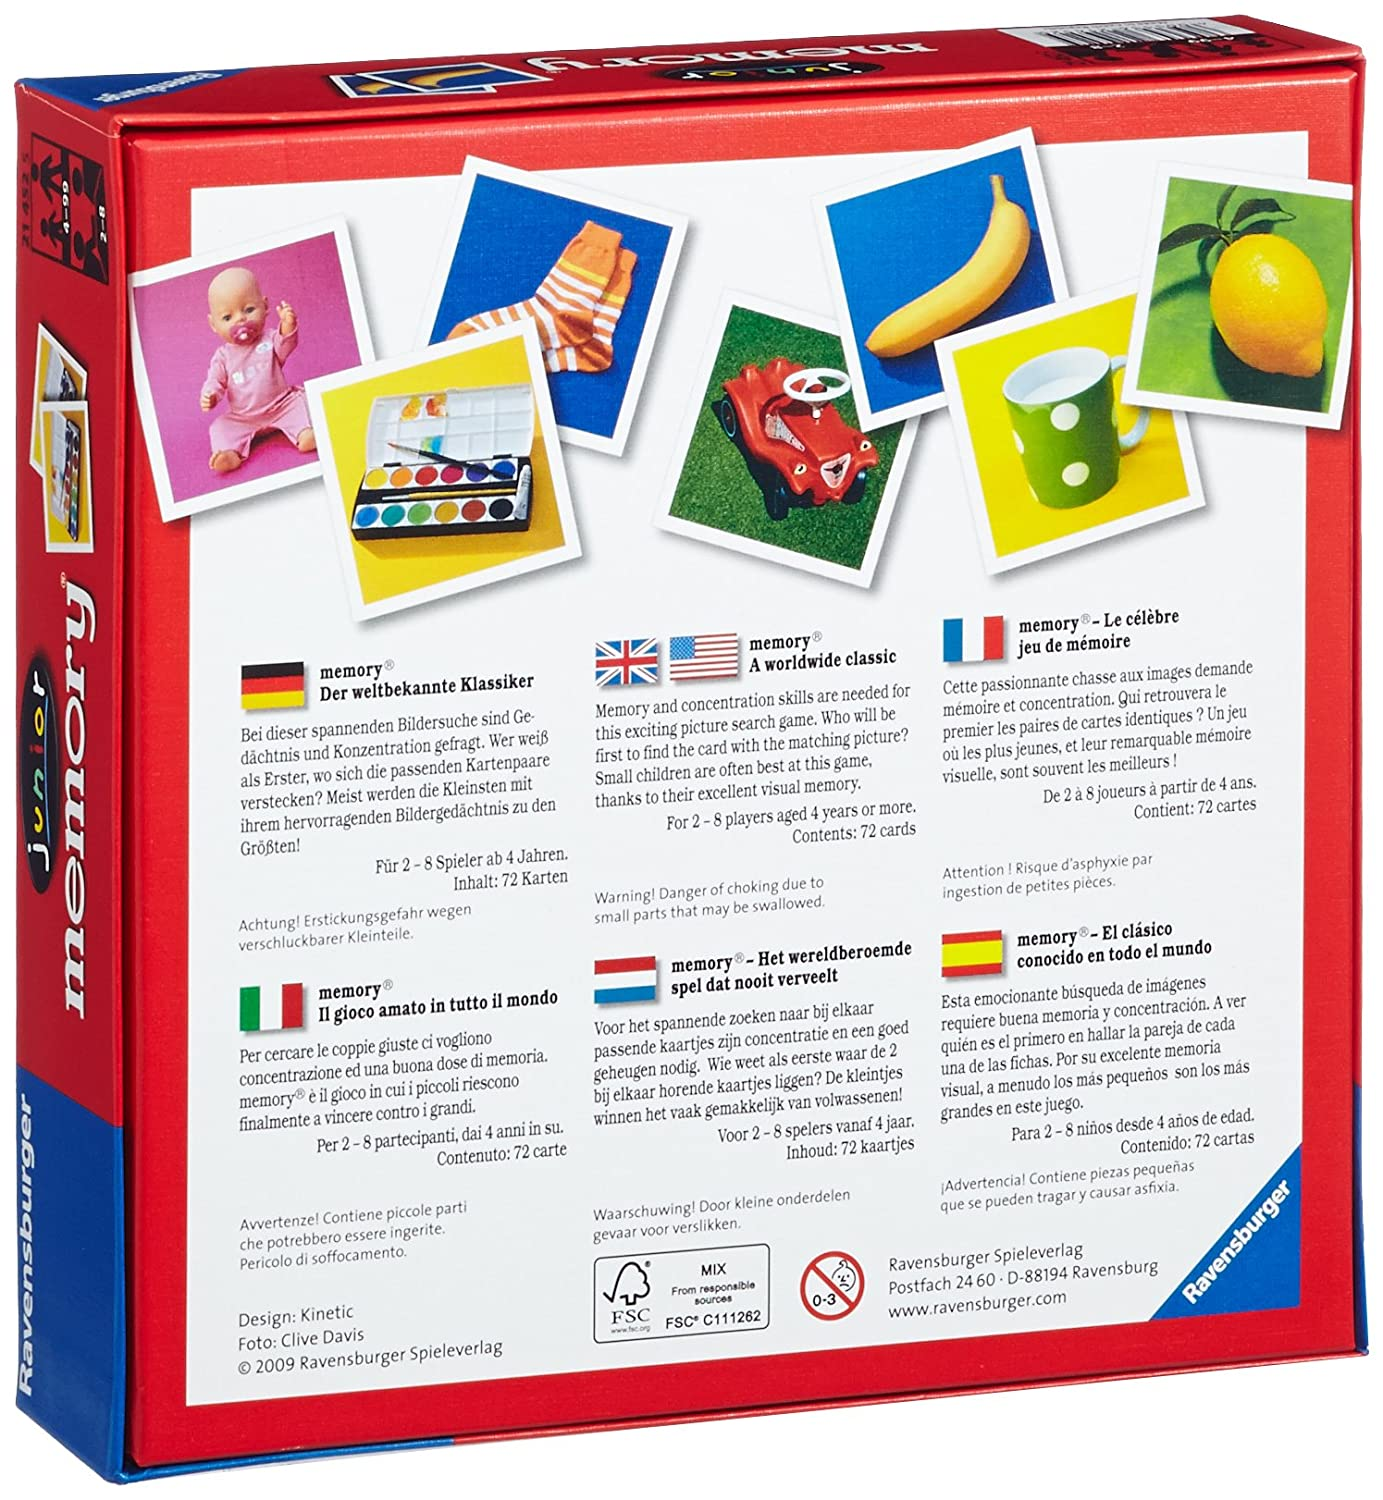 Amazon.com: Ravensburger Junior Memory Board Game: Toys & Games